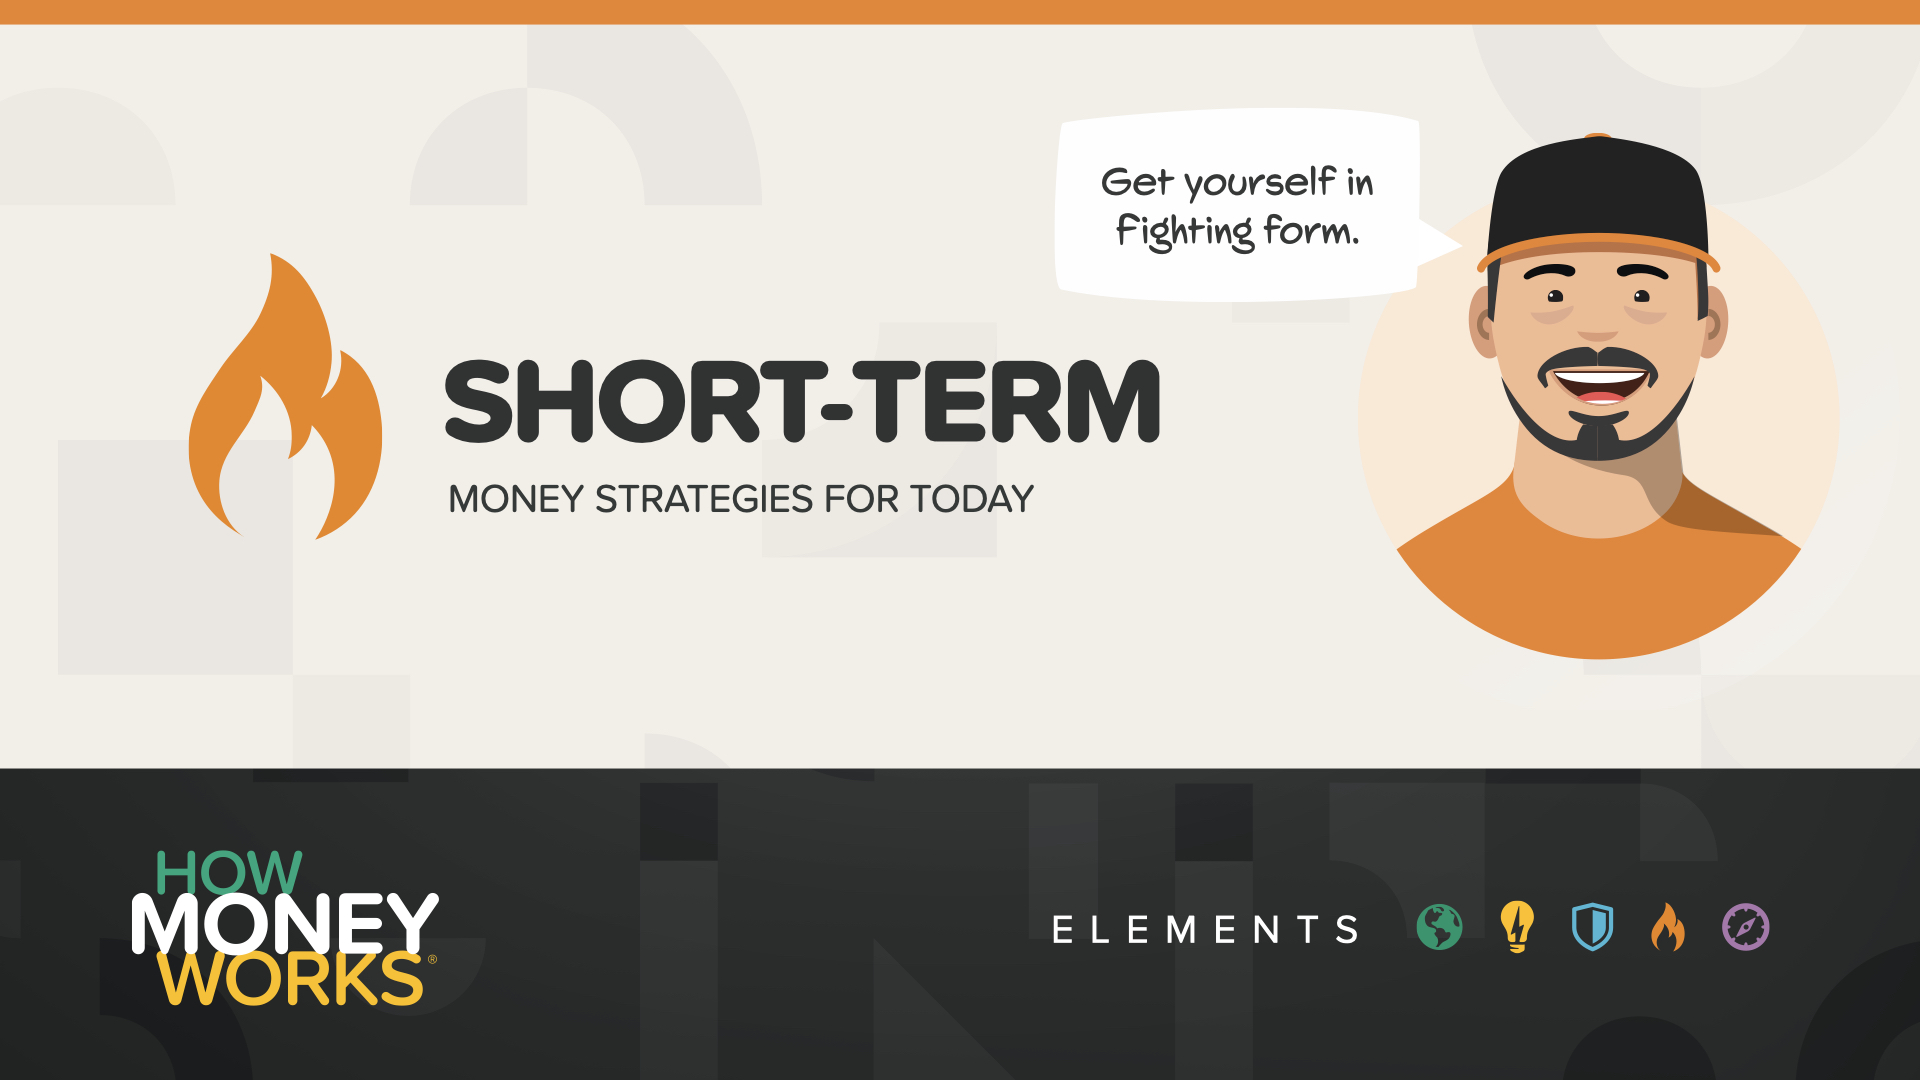 ELEMENTS - Short-Term